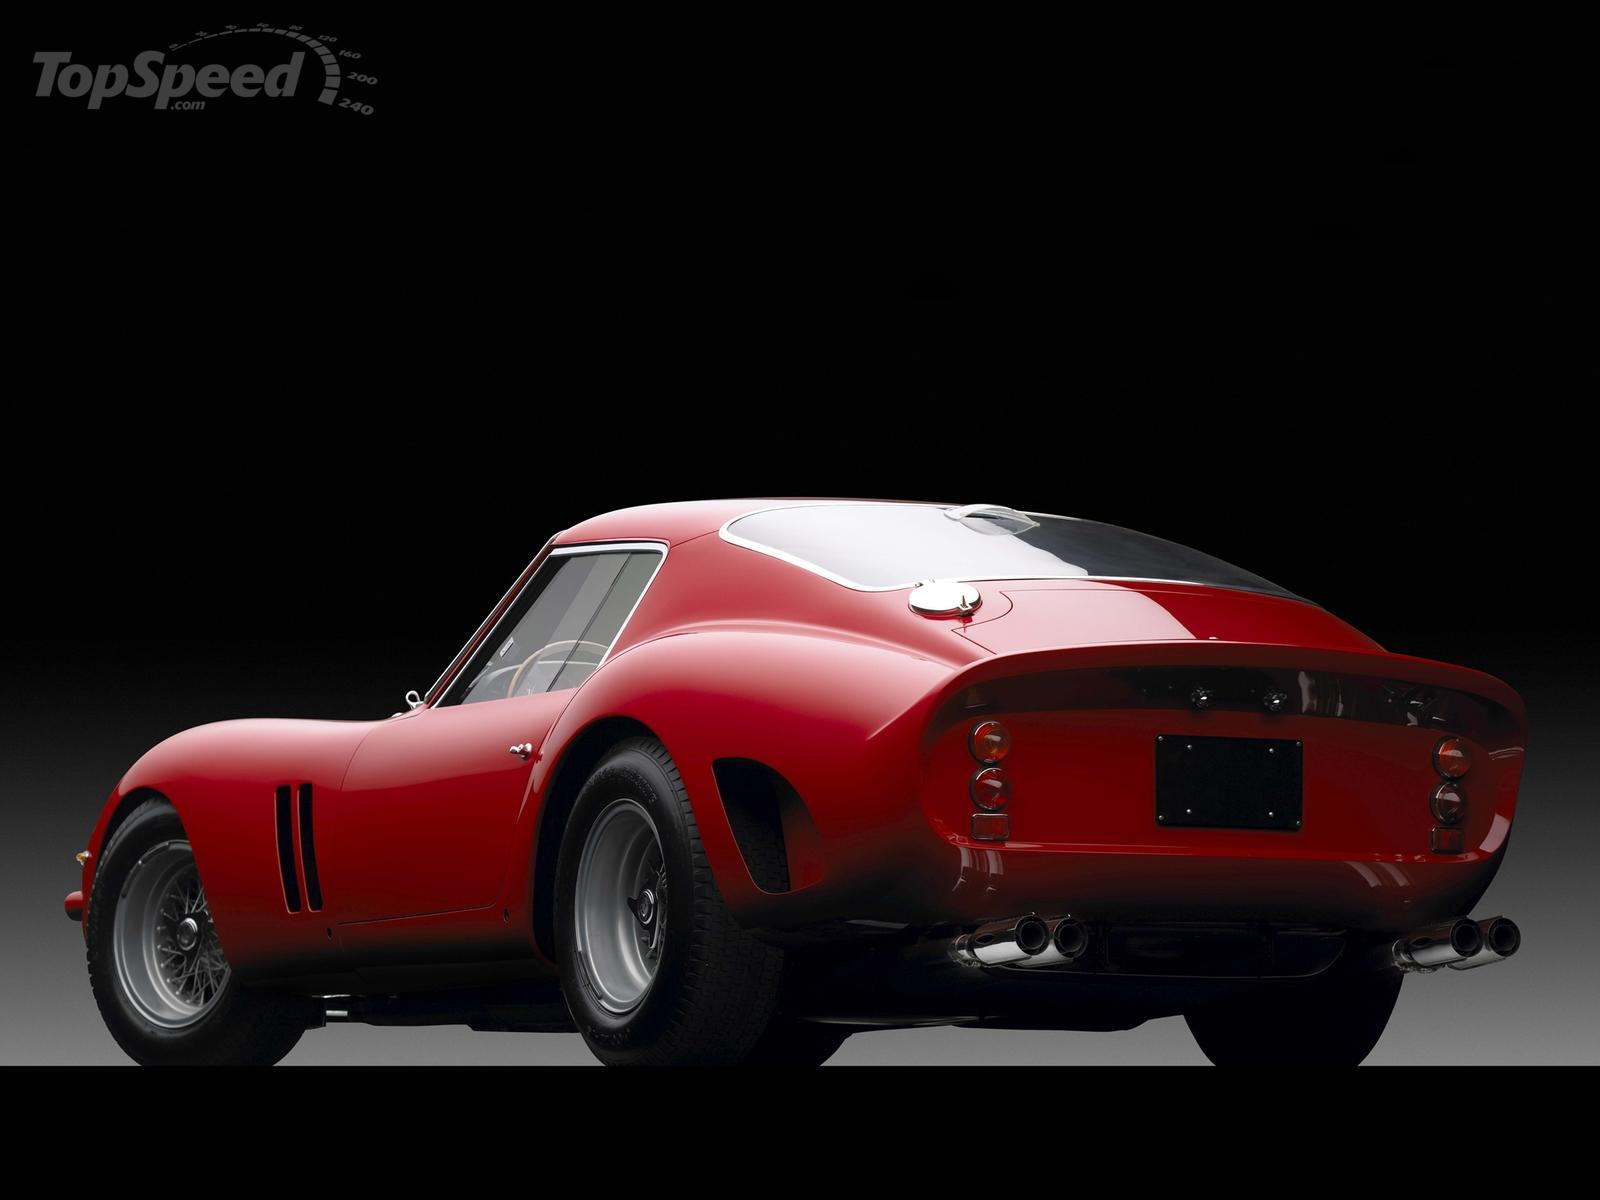 1962 1964 ferrari 250 gto picture 575372 car review top speed. Black Bedroom Furniture Sets. Home Design Ideas